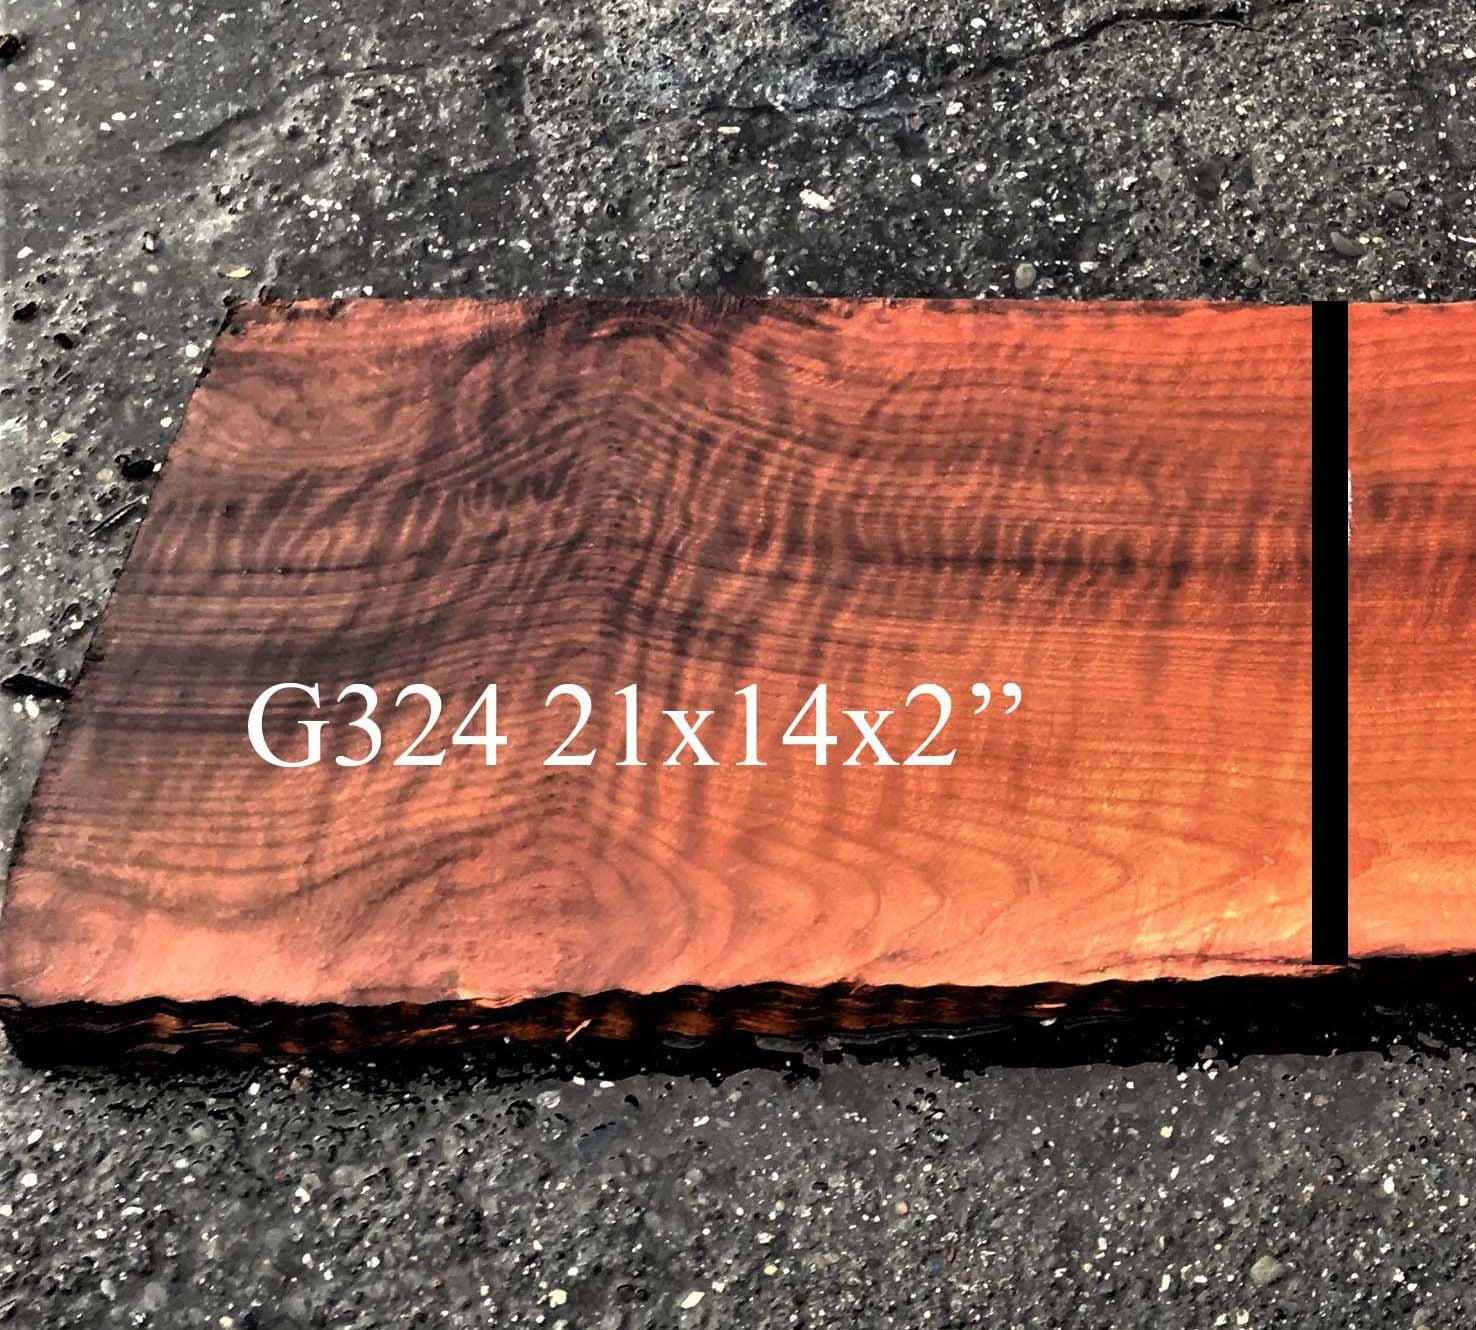 Guitar billet | quilted redwood | luthier woods | wood crafts - g324